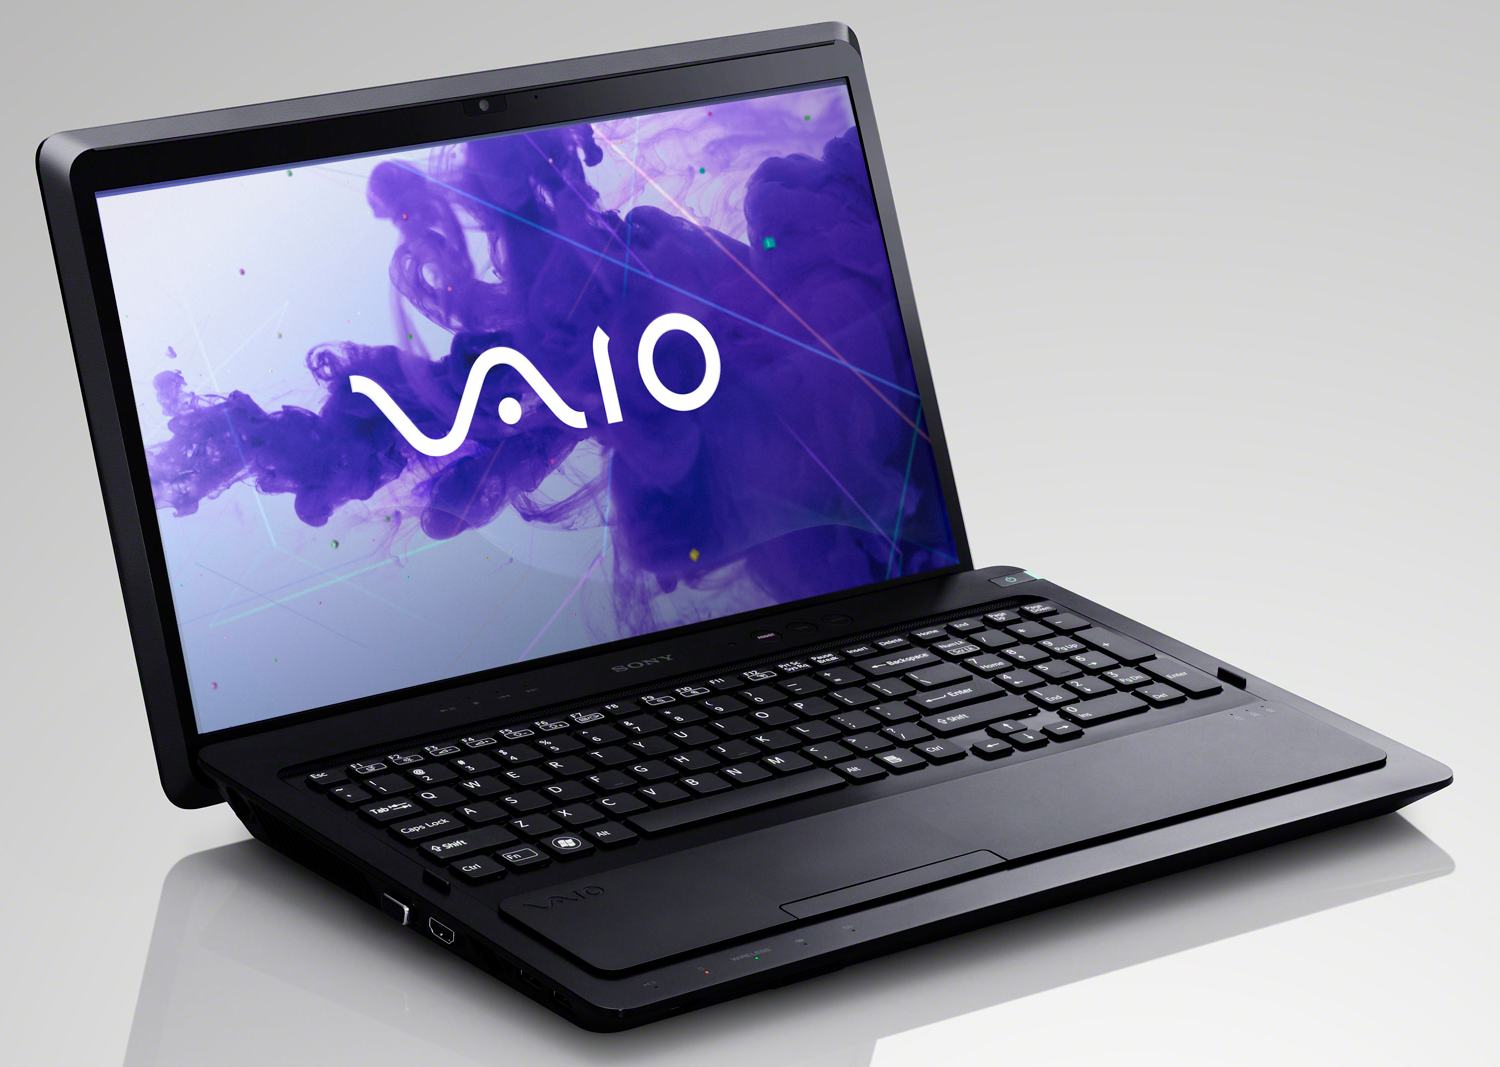 Sony Vaio VPCF224FX Smart Network Windows 8